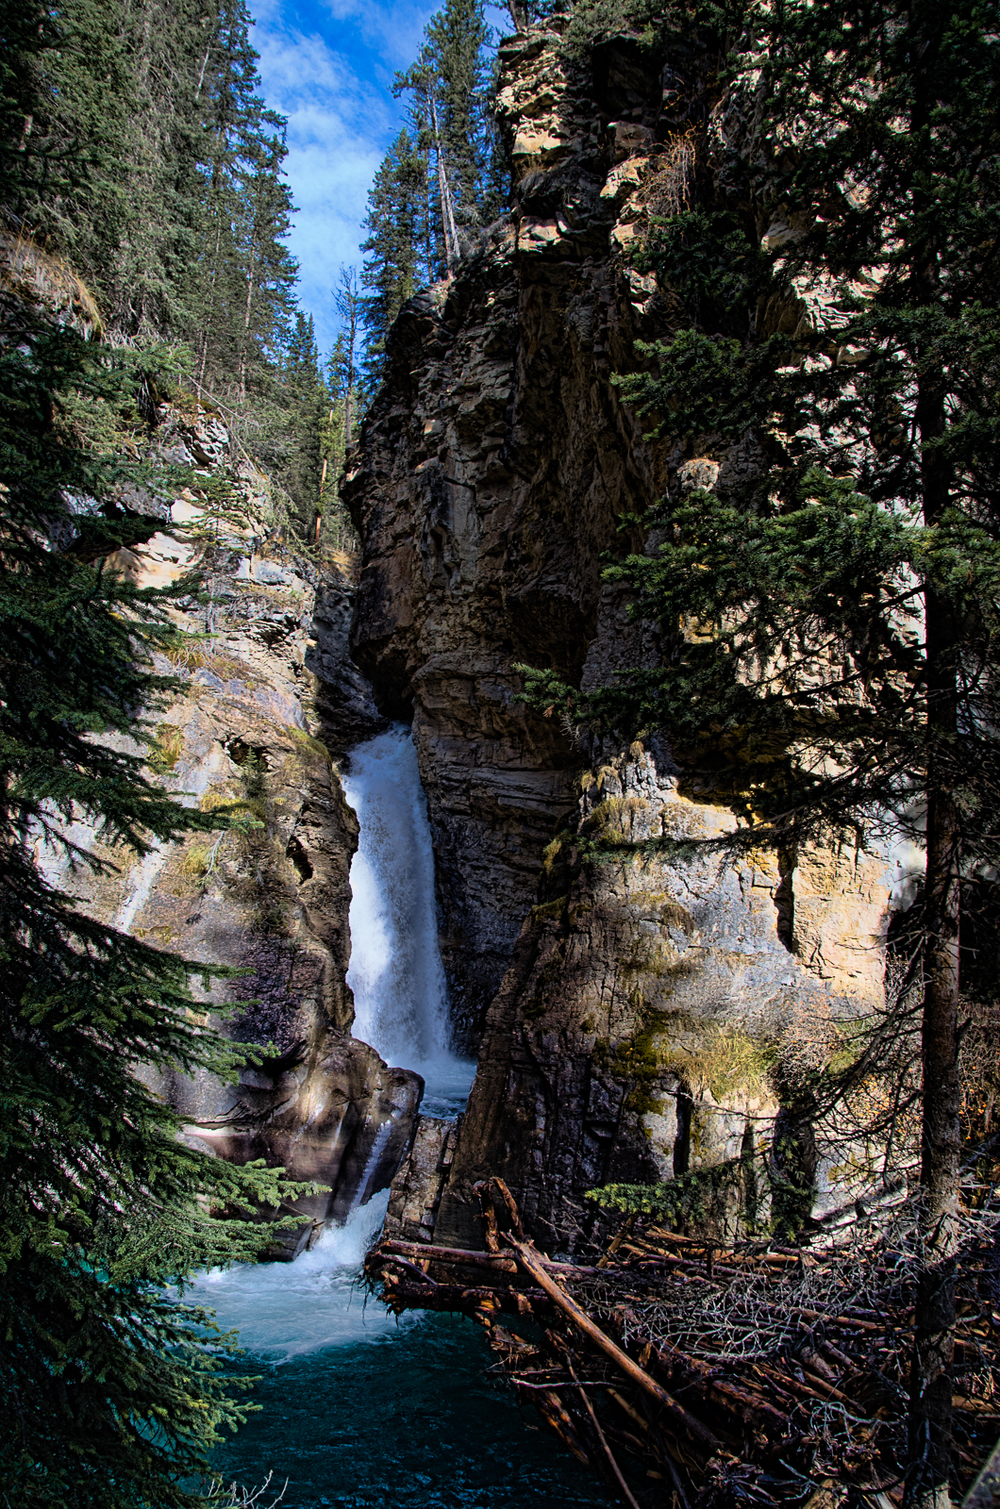 Falling Through The Canyon. Johnston Canyon is located in Banff National Park, Alberta, Canada. This was such a neat area to walk through. This is the lower falls, which is still a nice little hike to get to. Maybe next time we will keep on hiking to the next falls.